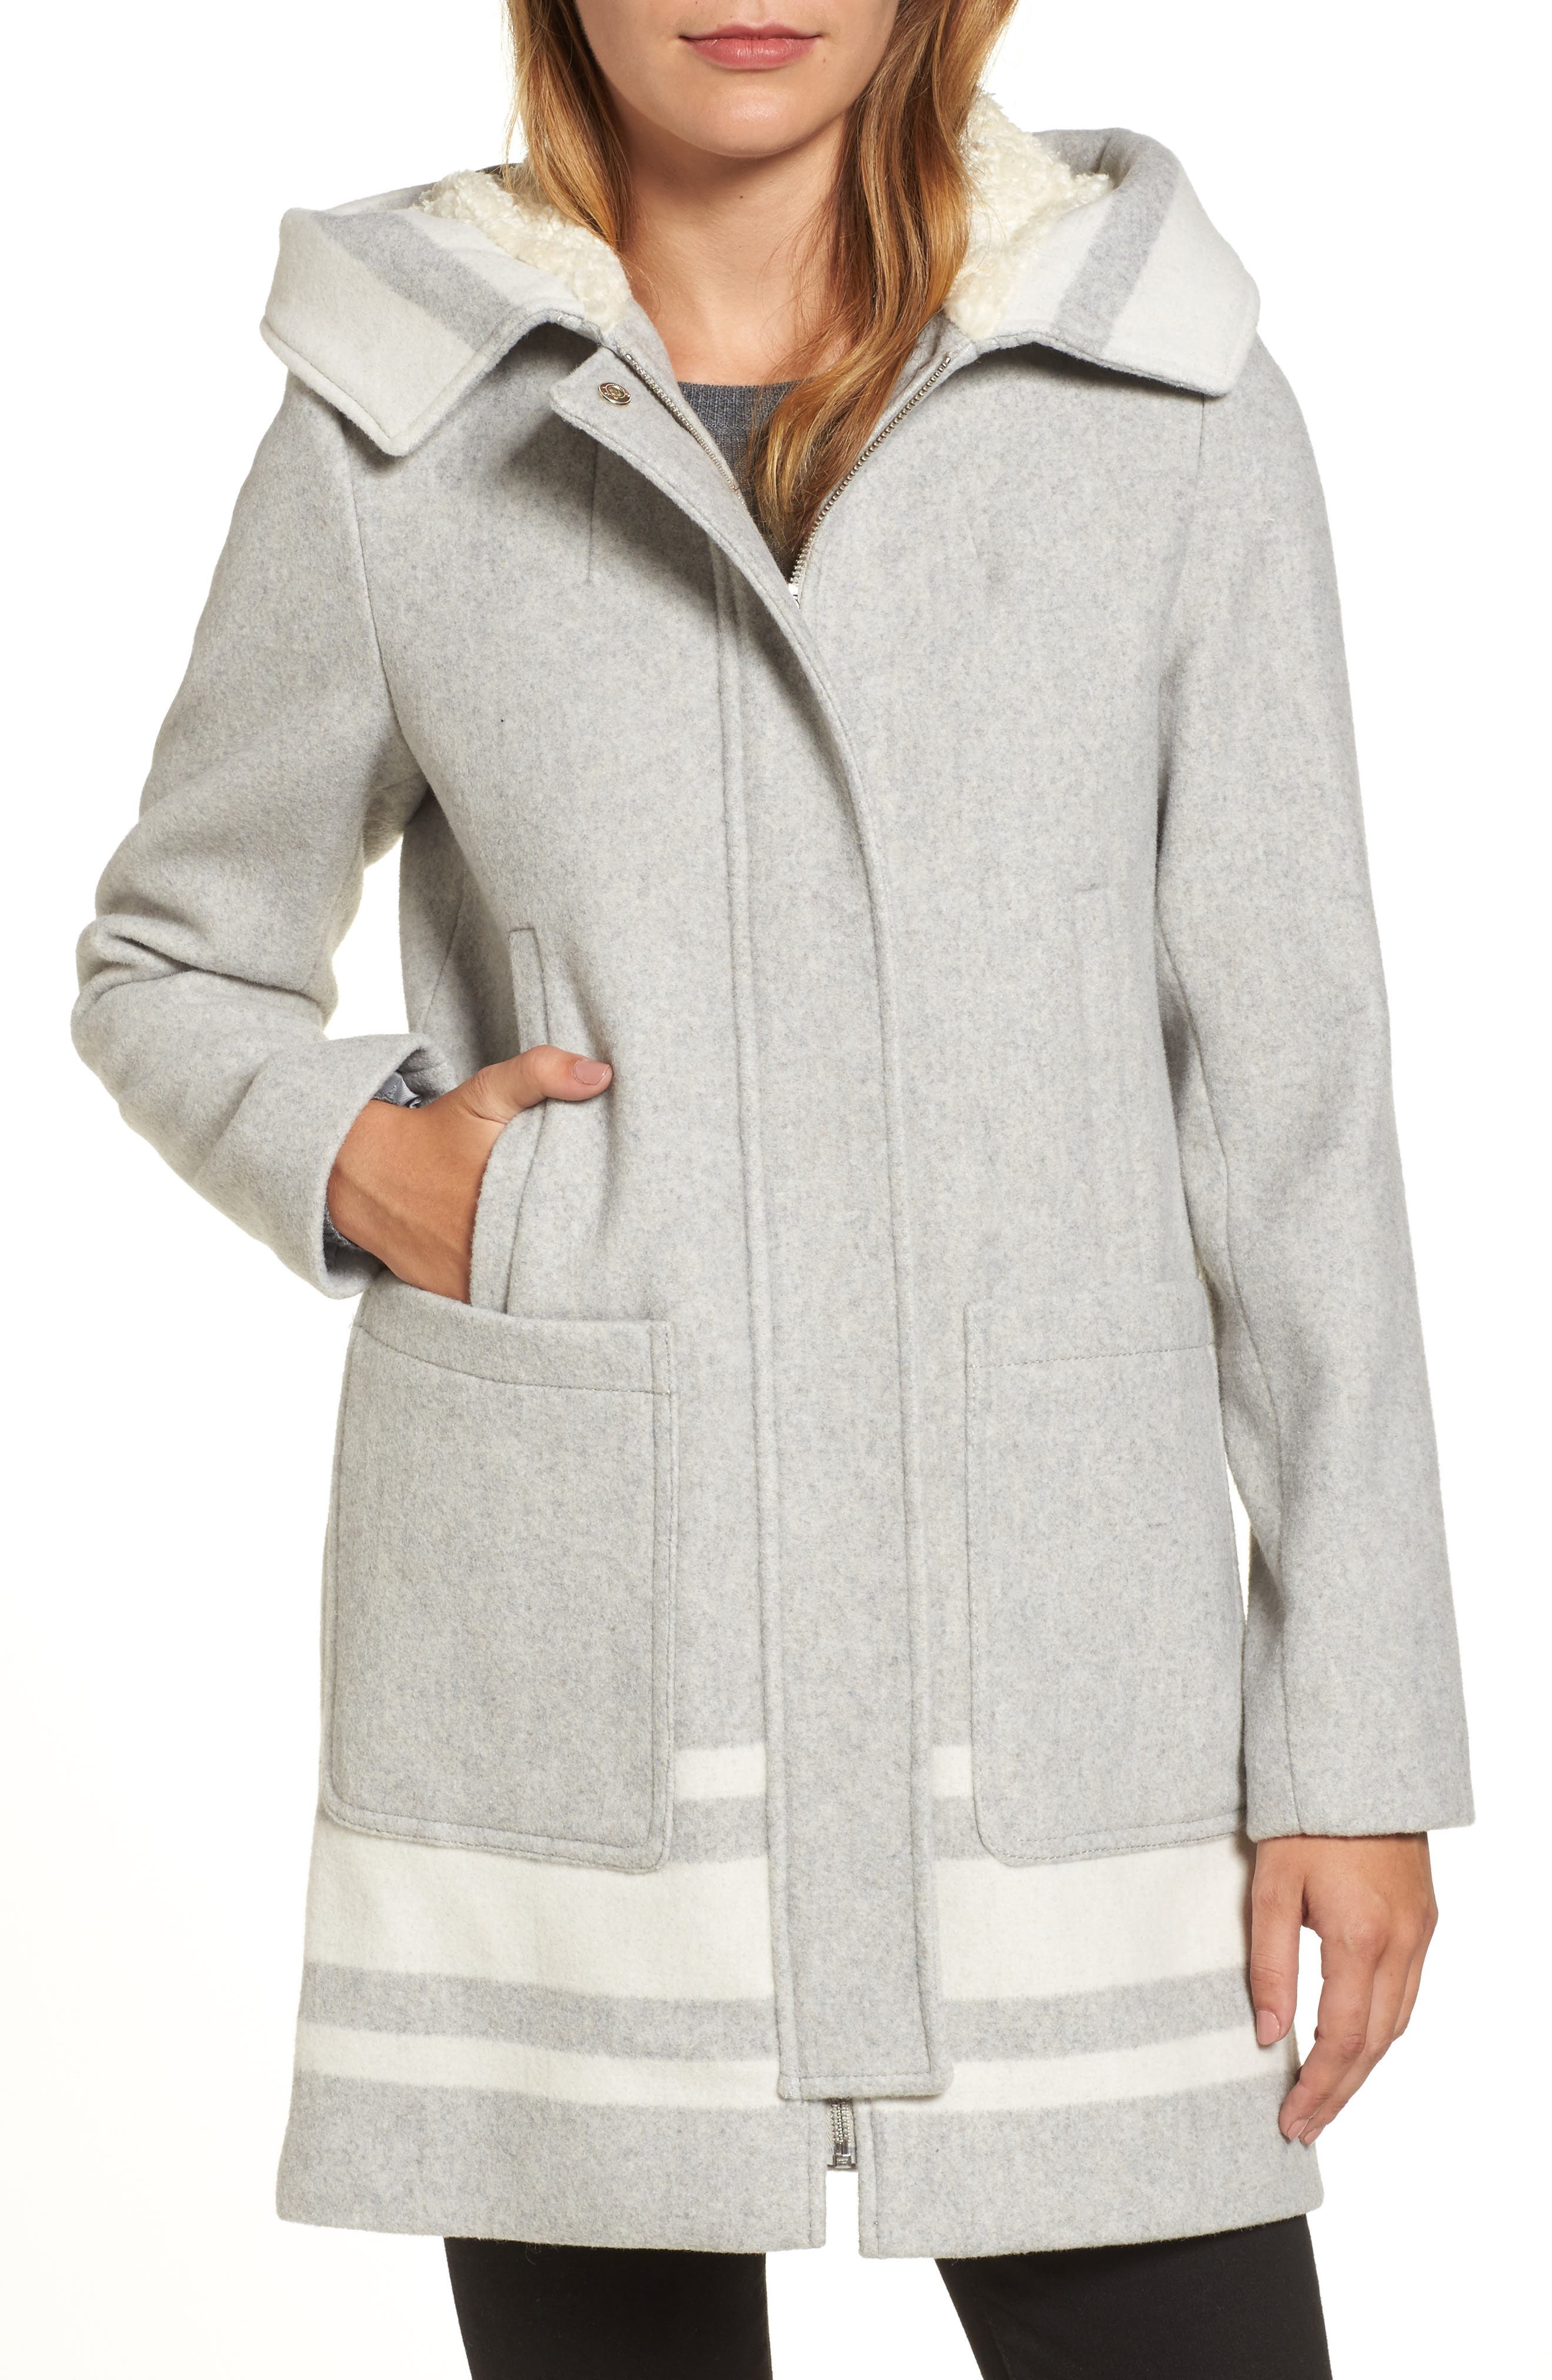 Alternate Image 1 Selected - Vince Camuto Hooded Car Coat